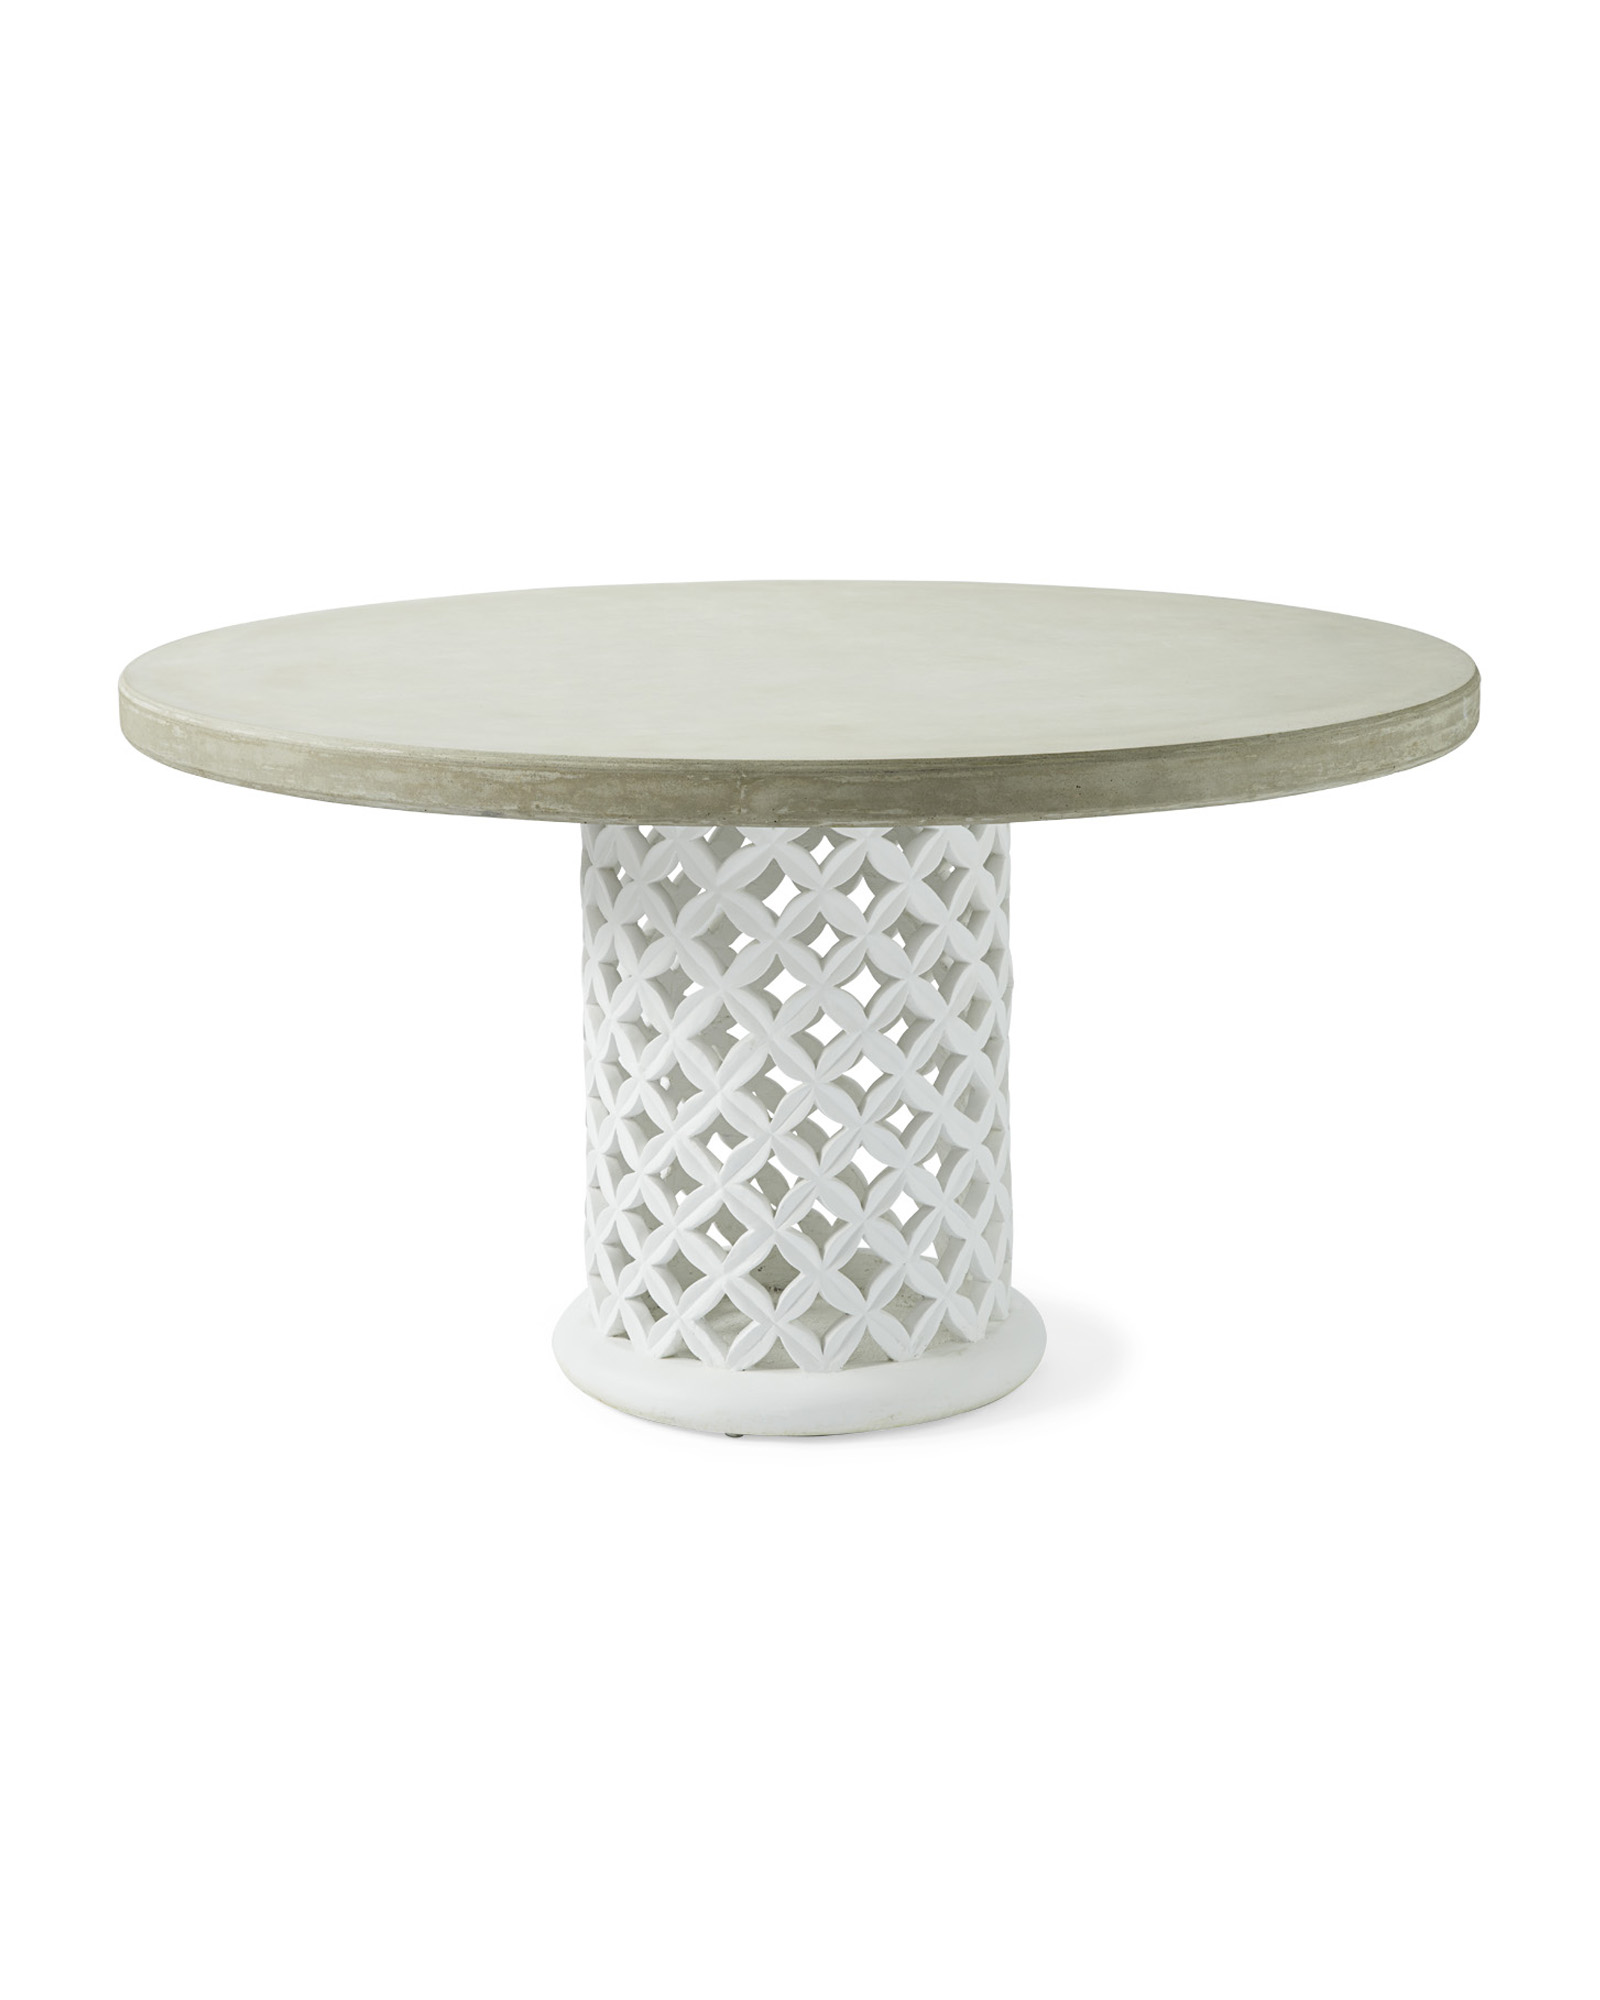 Bamileke Round Dining Table, Fog/White